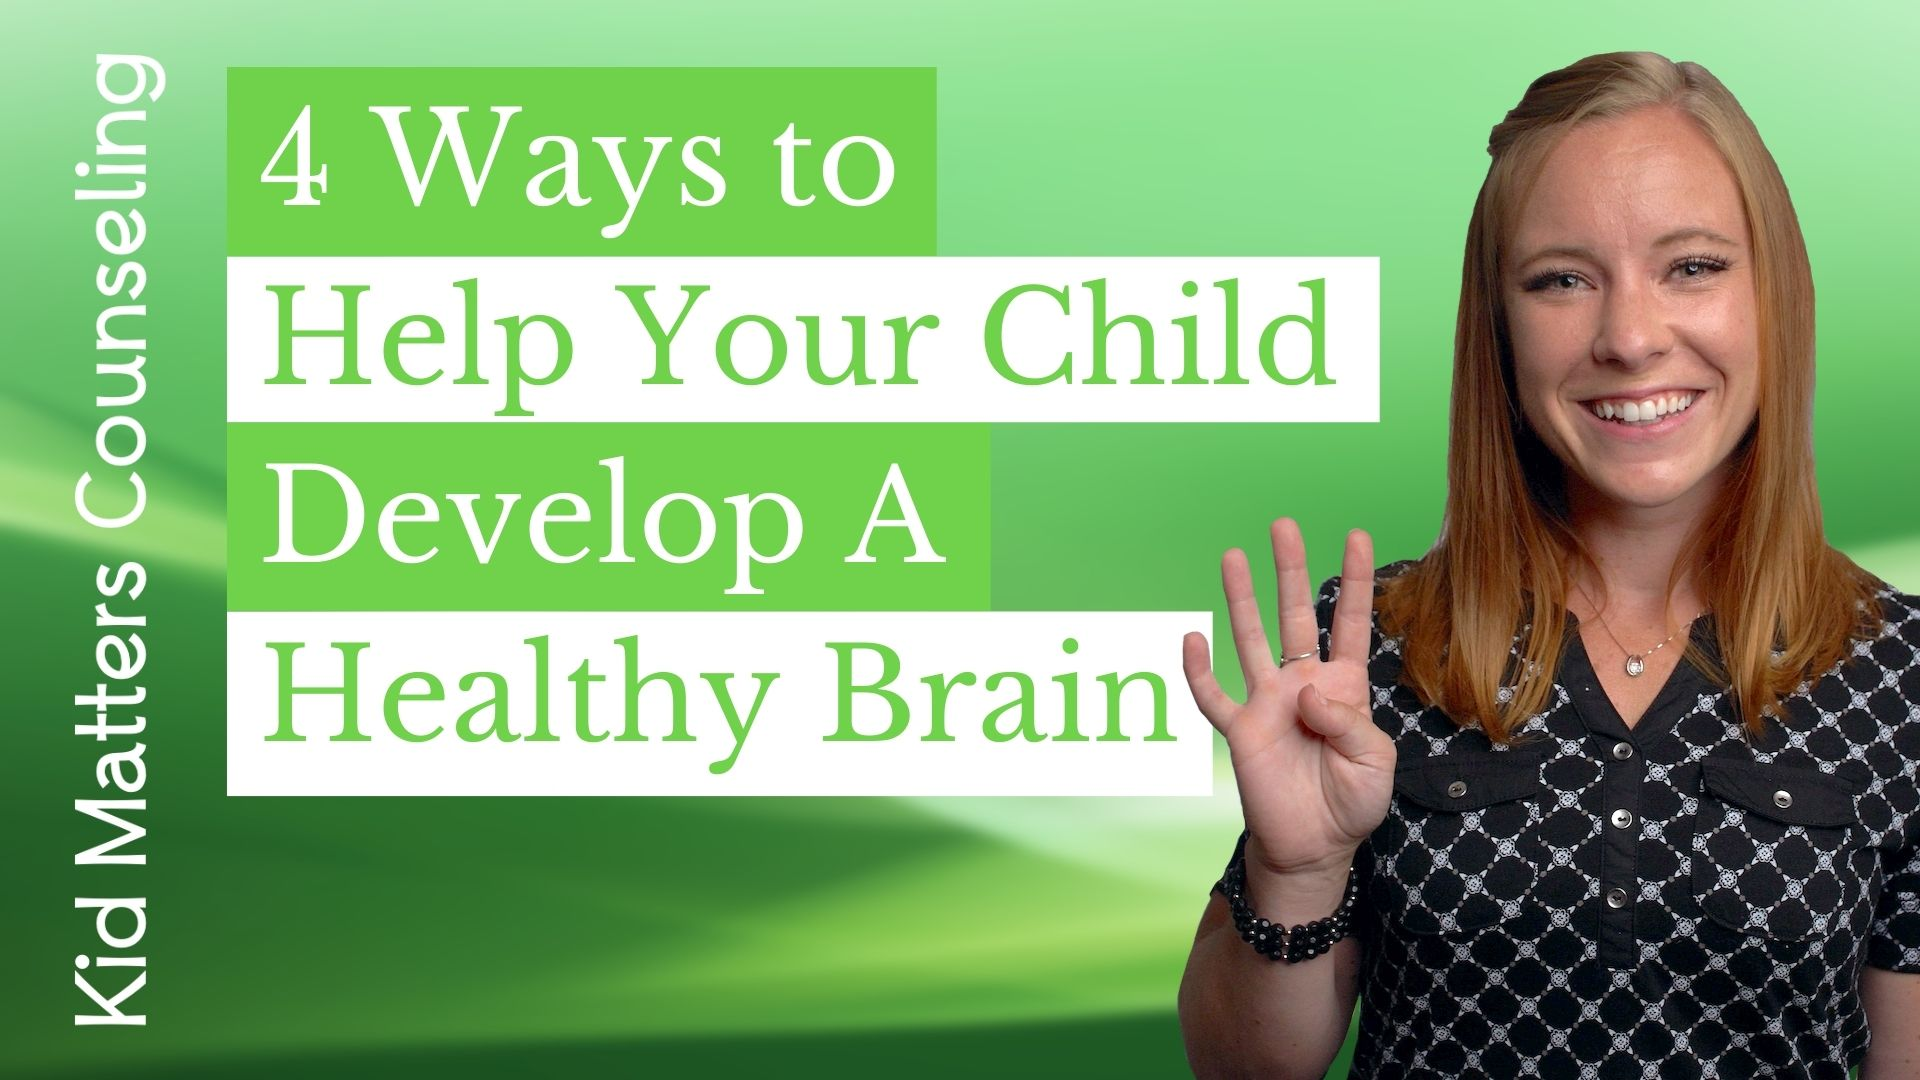 4 Ways to Help Your Child Develop a Healthy Brain